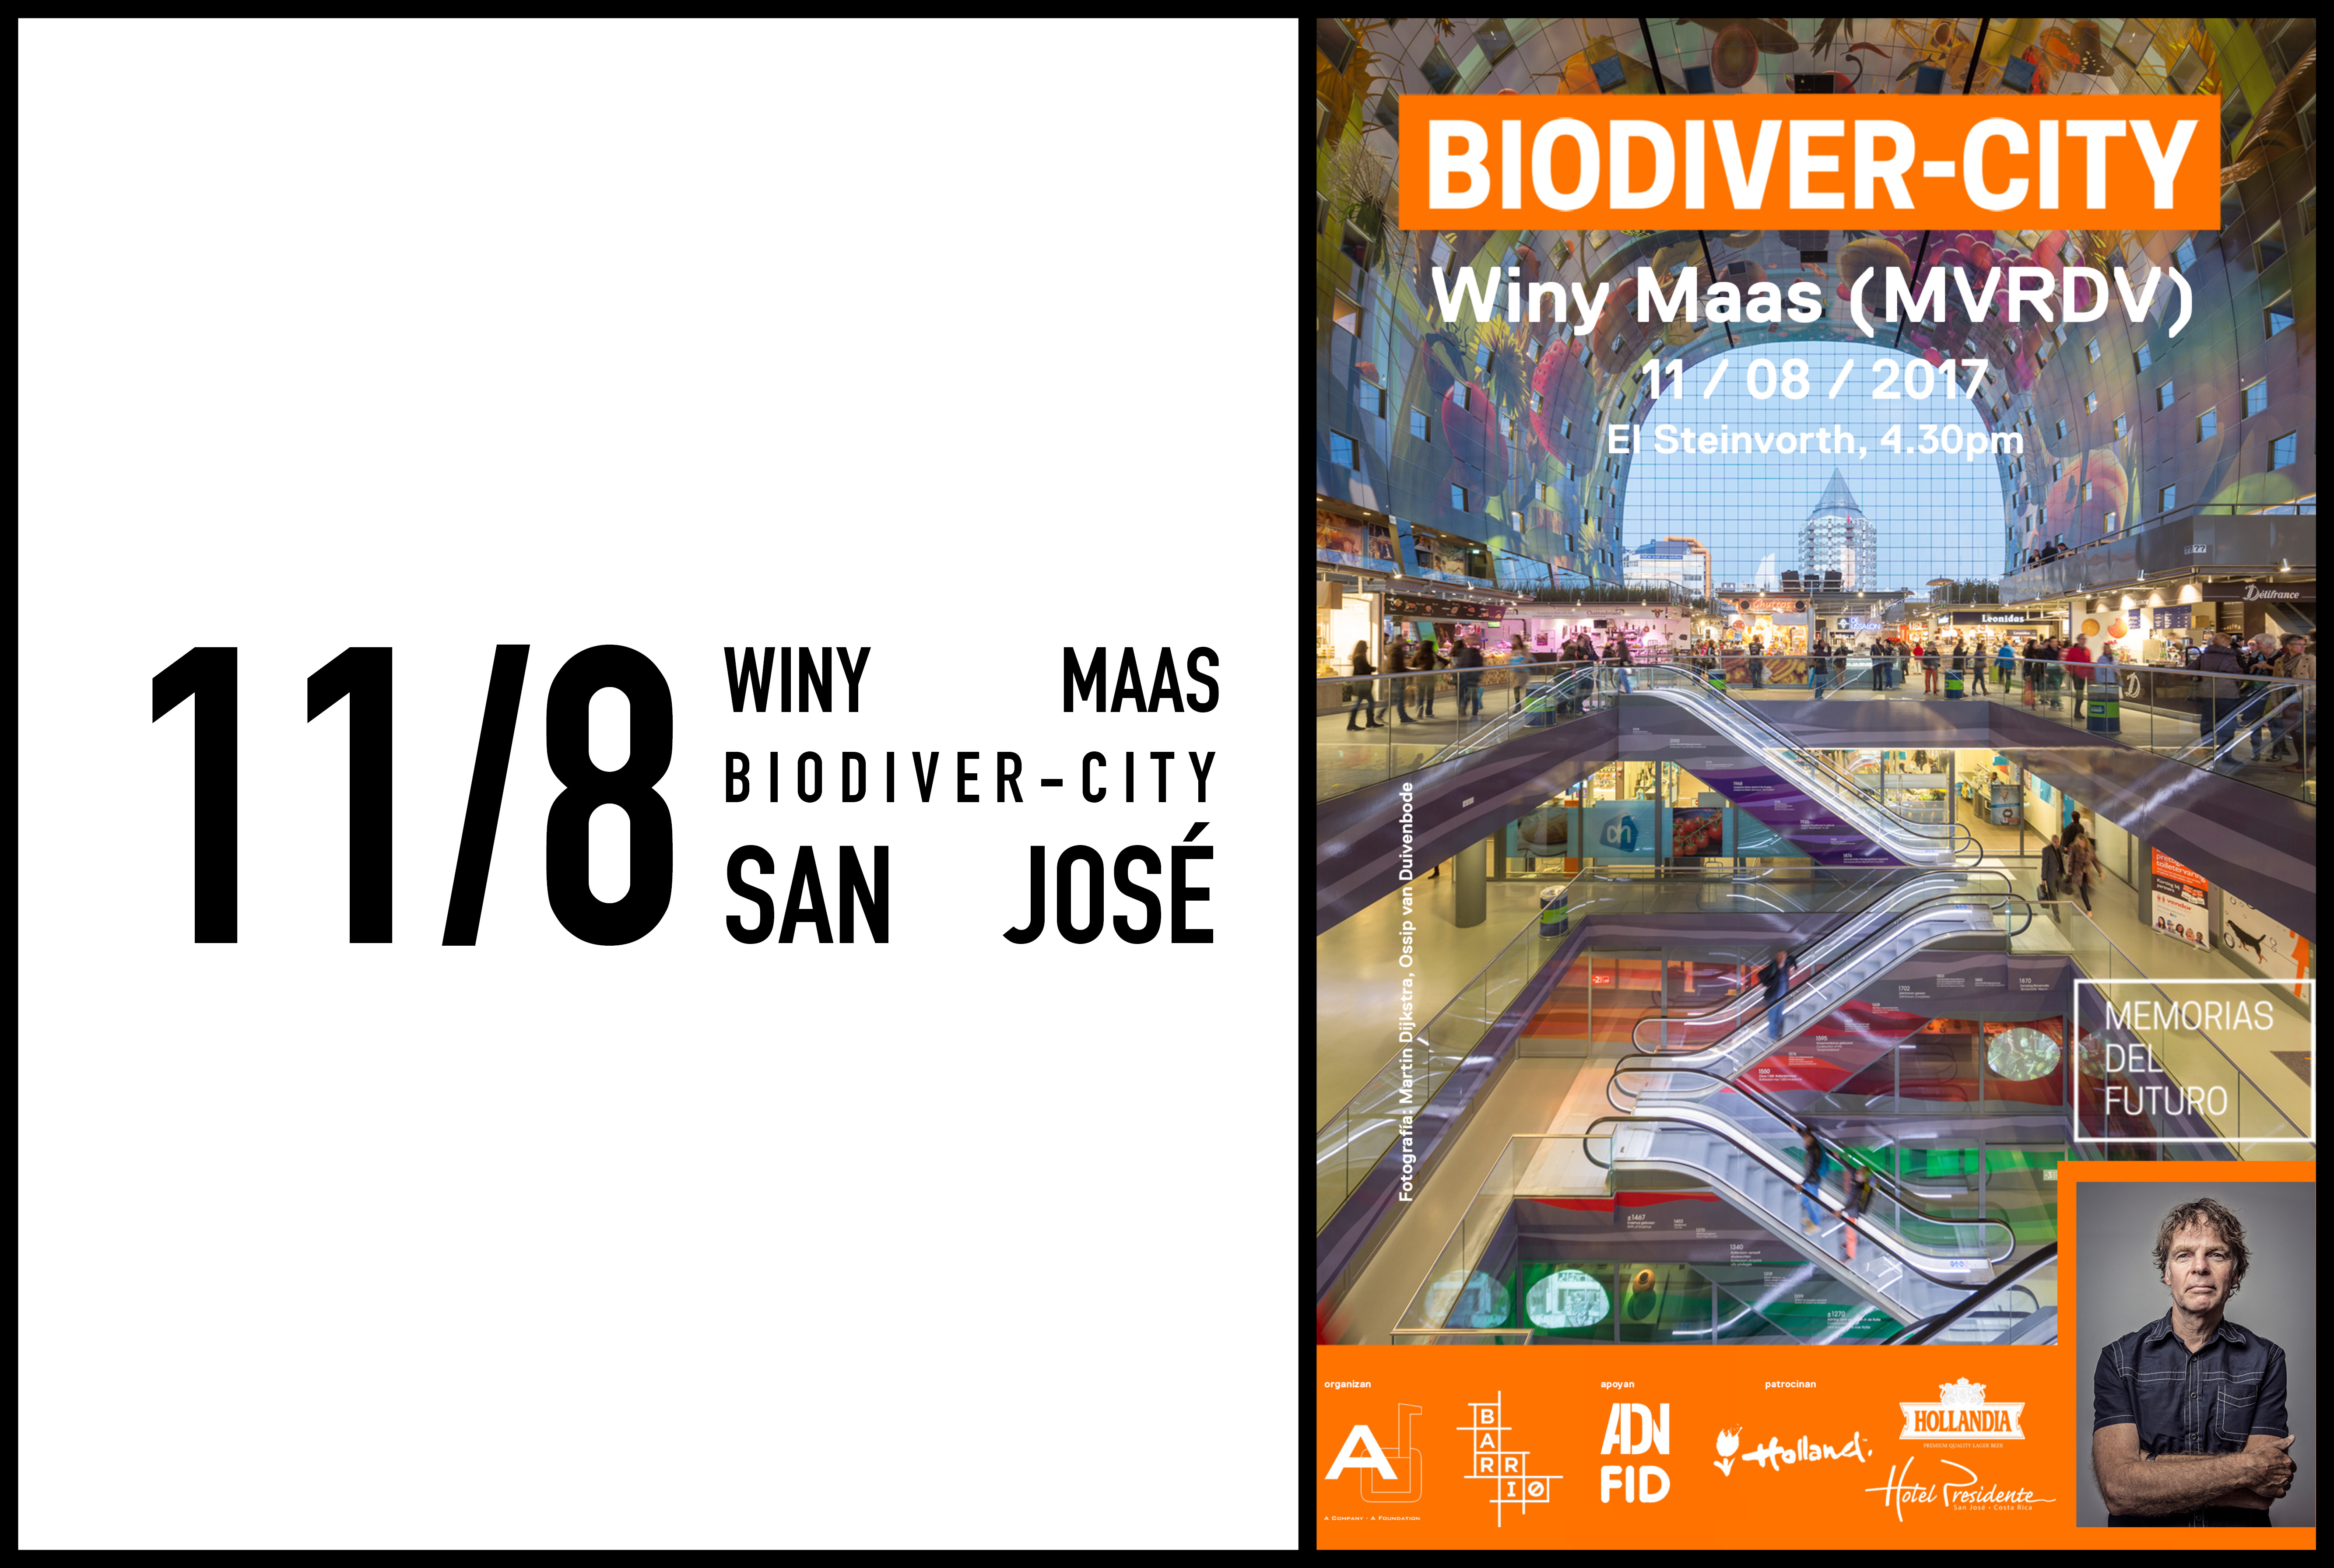 Winy Maas to give a lecture at Biodiver-City San José, 11 August 2017